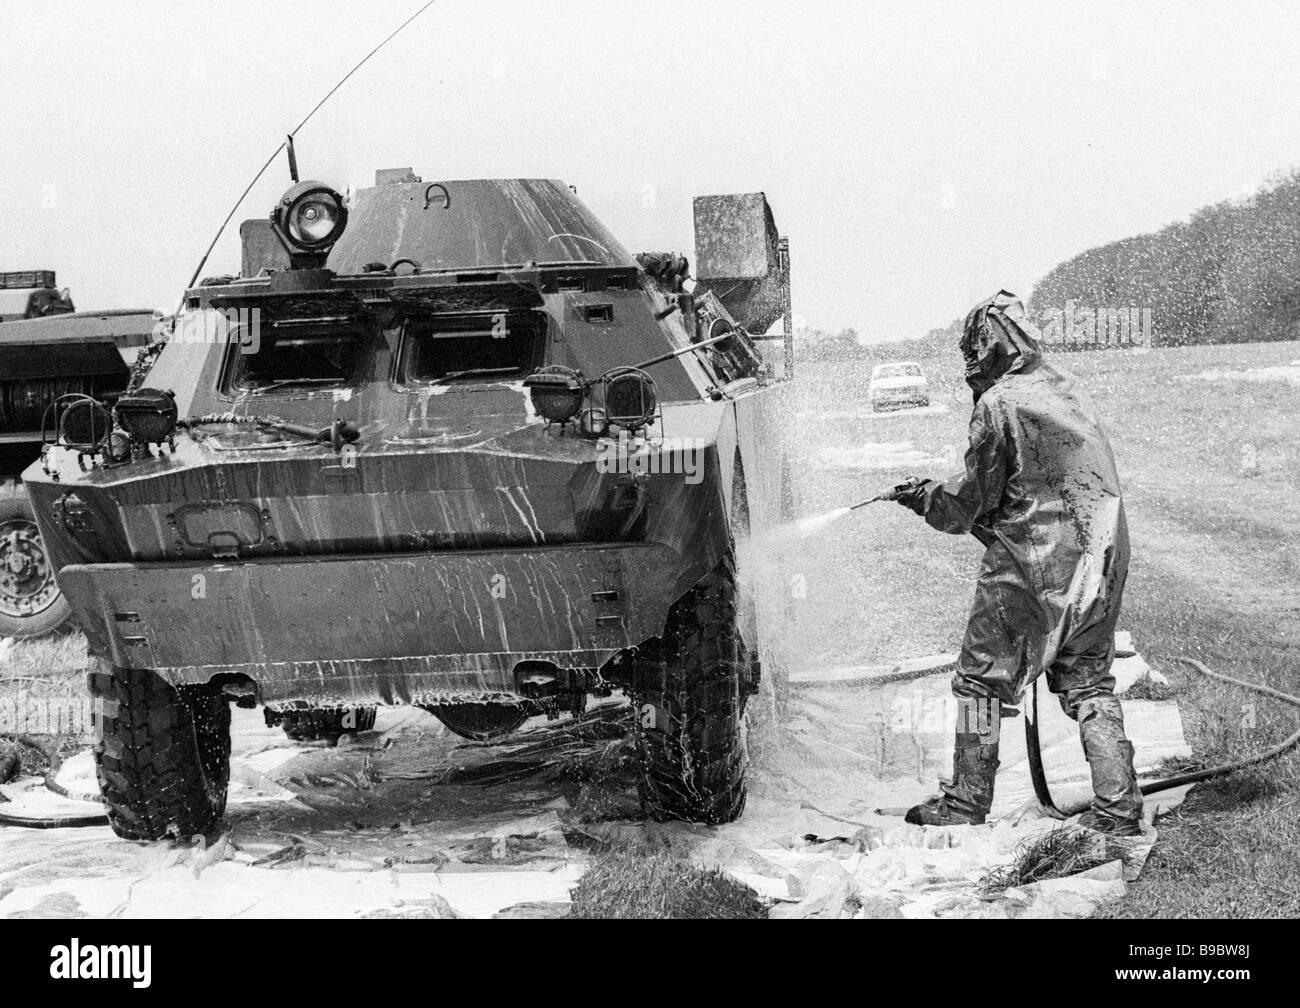 Military hardware working in the Chernobyl disaster area undergoes decontamination at the special point - Stock Image